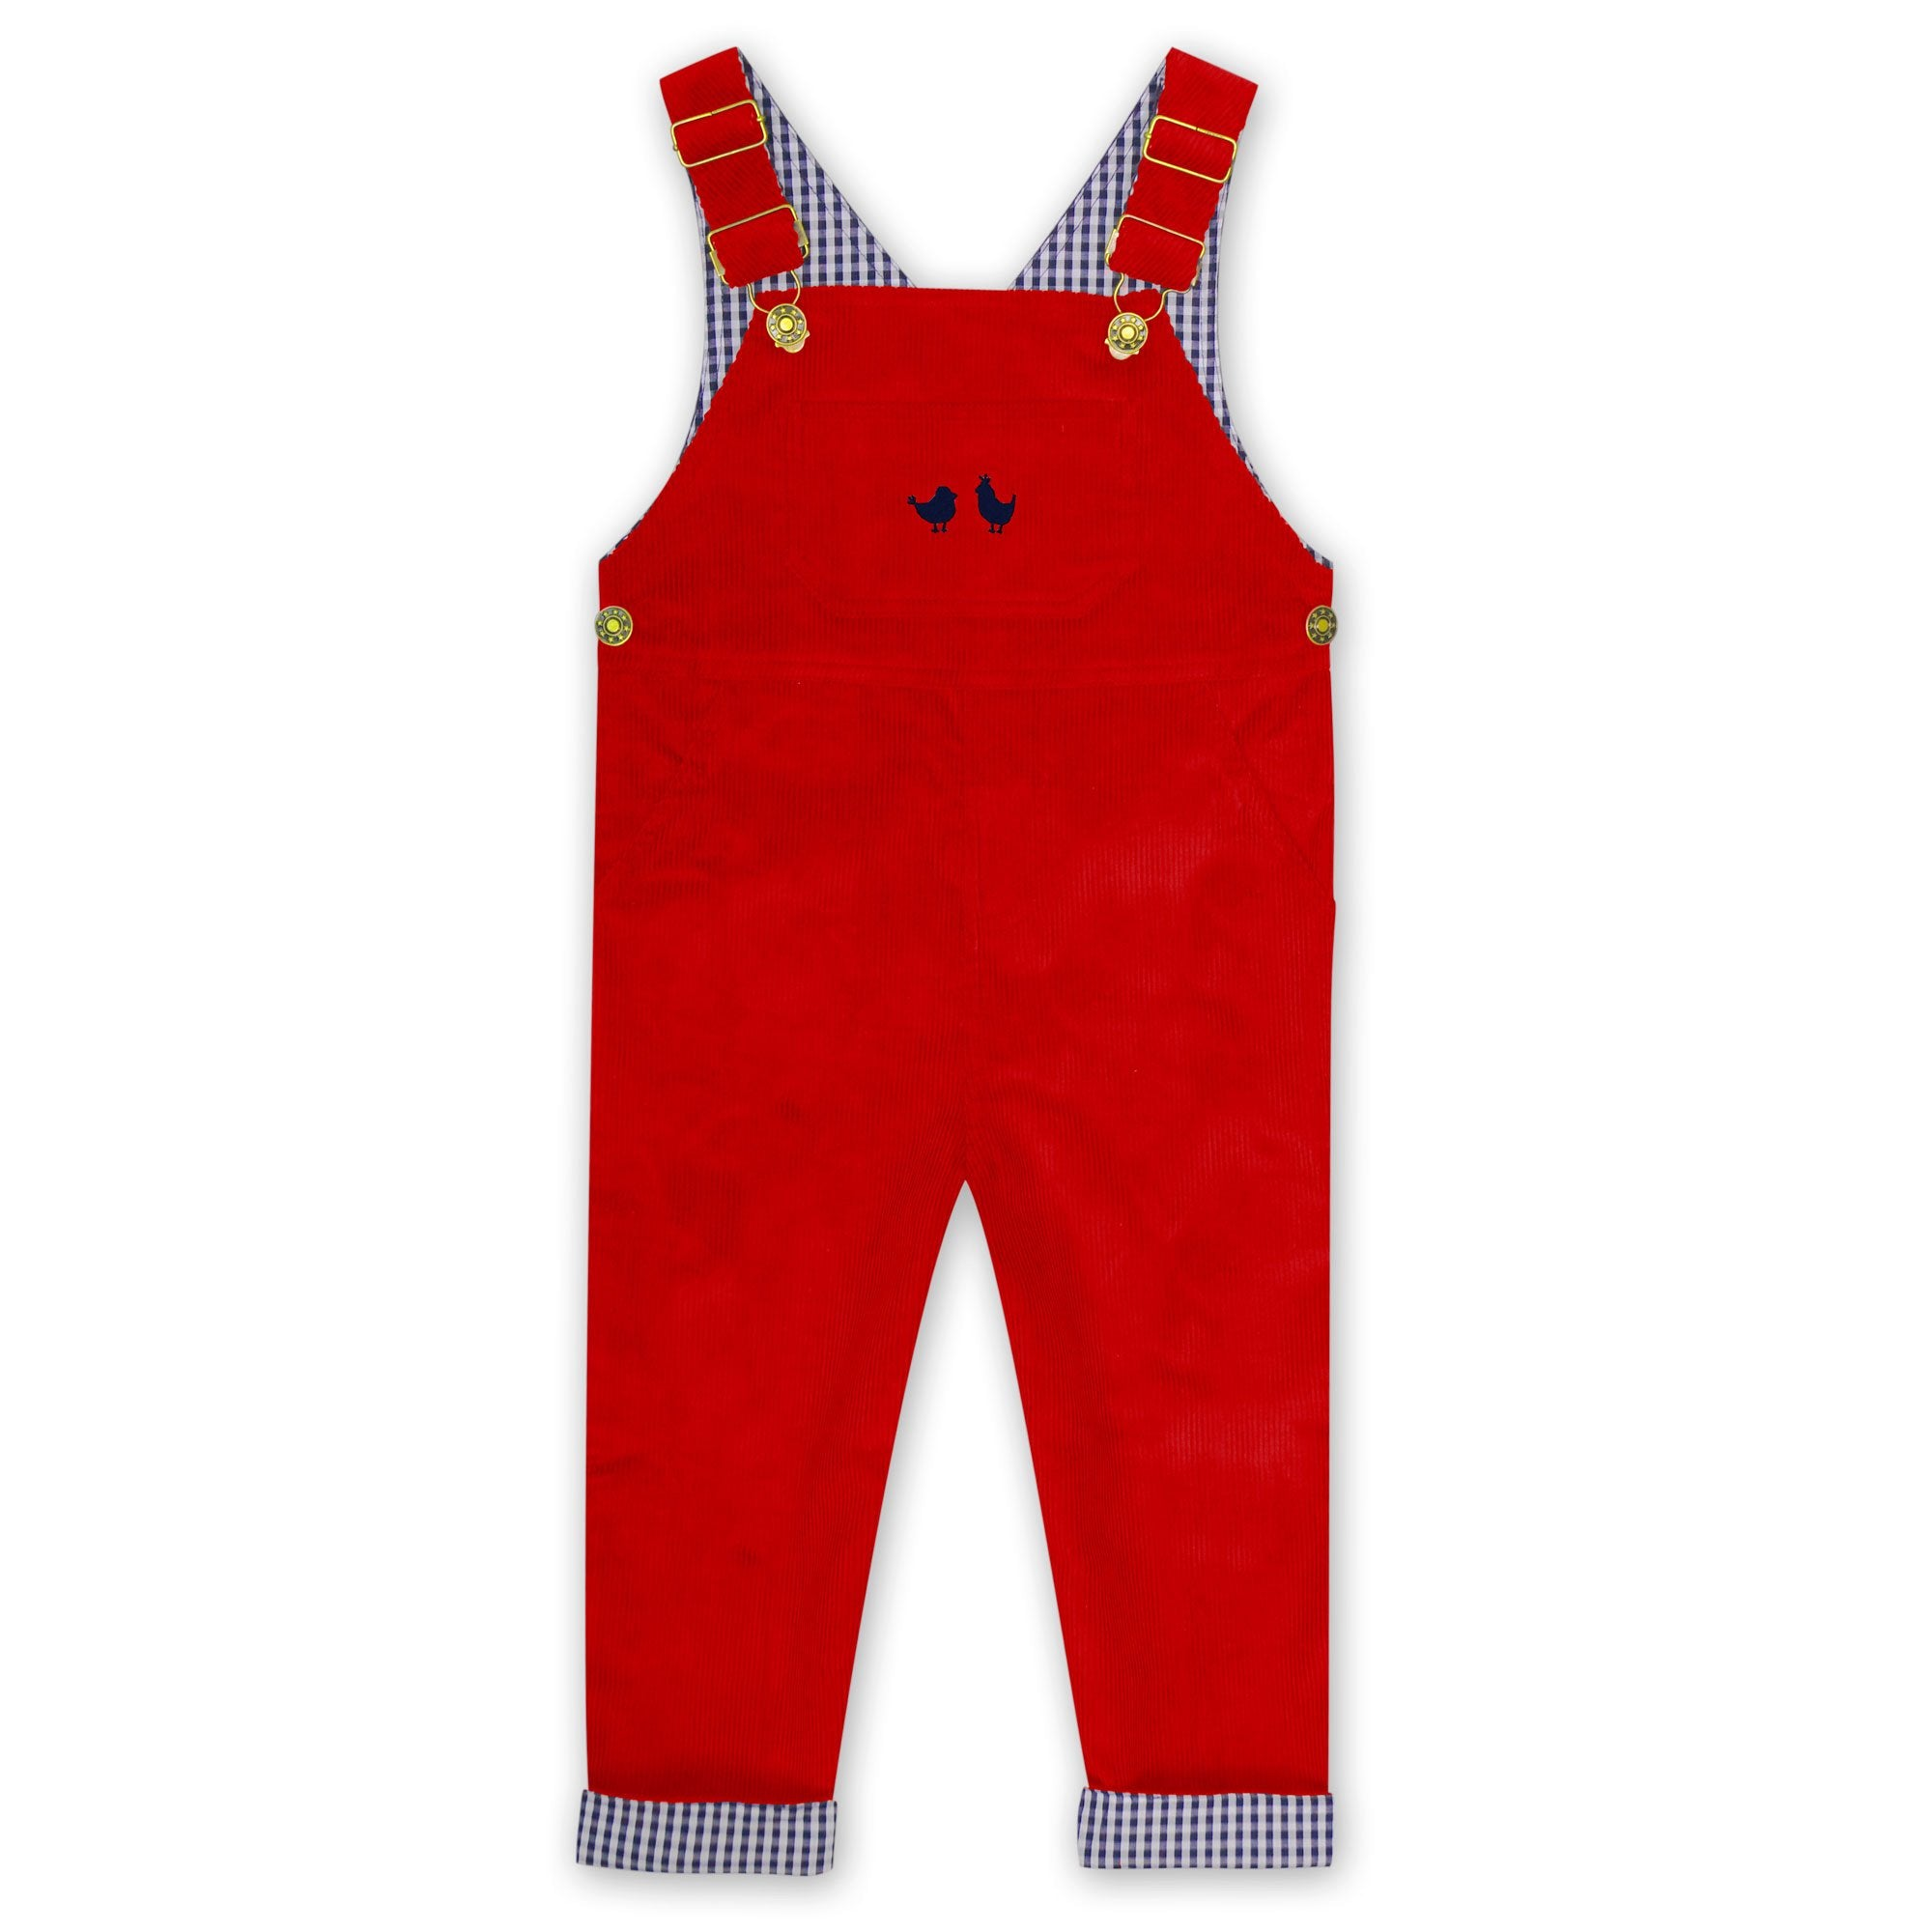 CORDUROY OVERALLS IN RED WITH NAVY BIRDS